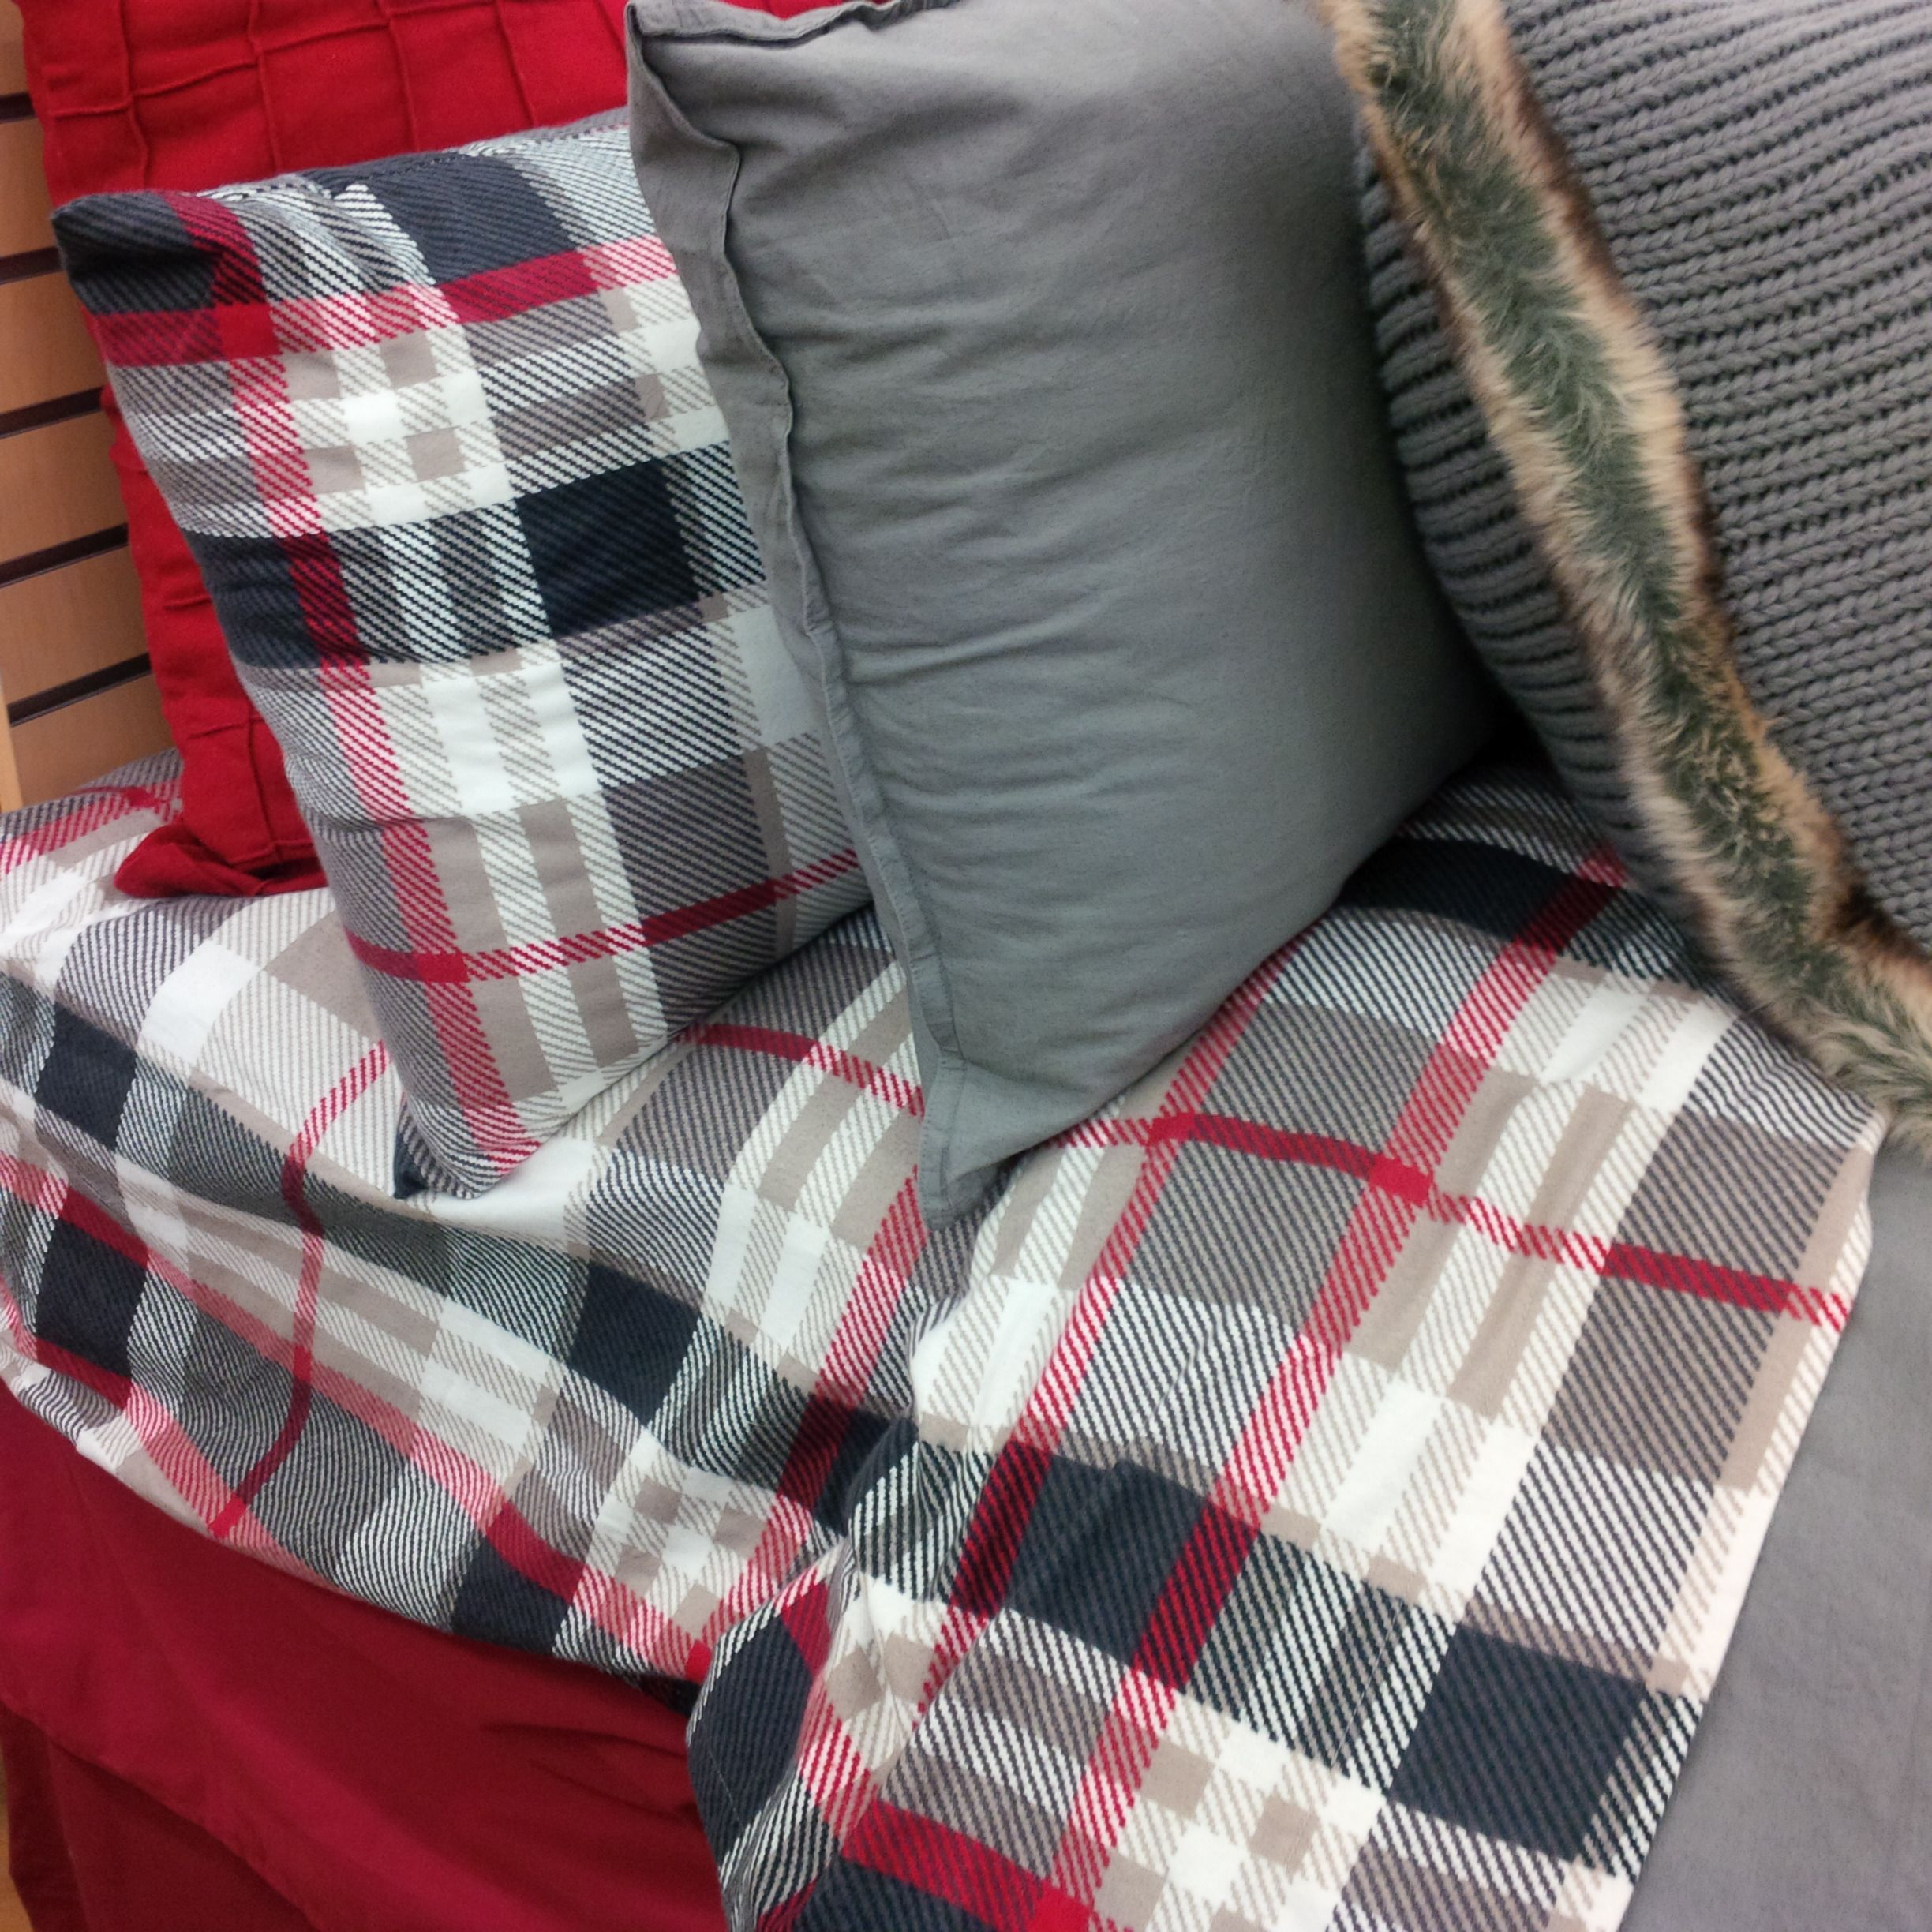 Bed, Bath & Beyond bedding as an alternate for our middle son's